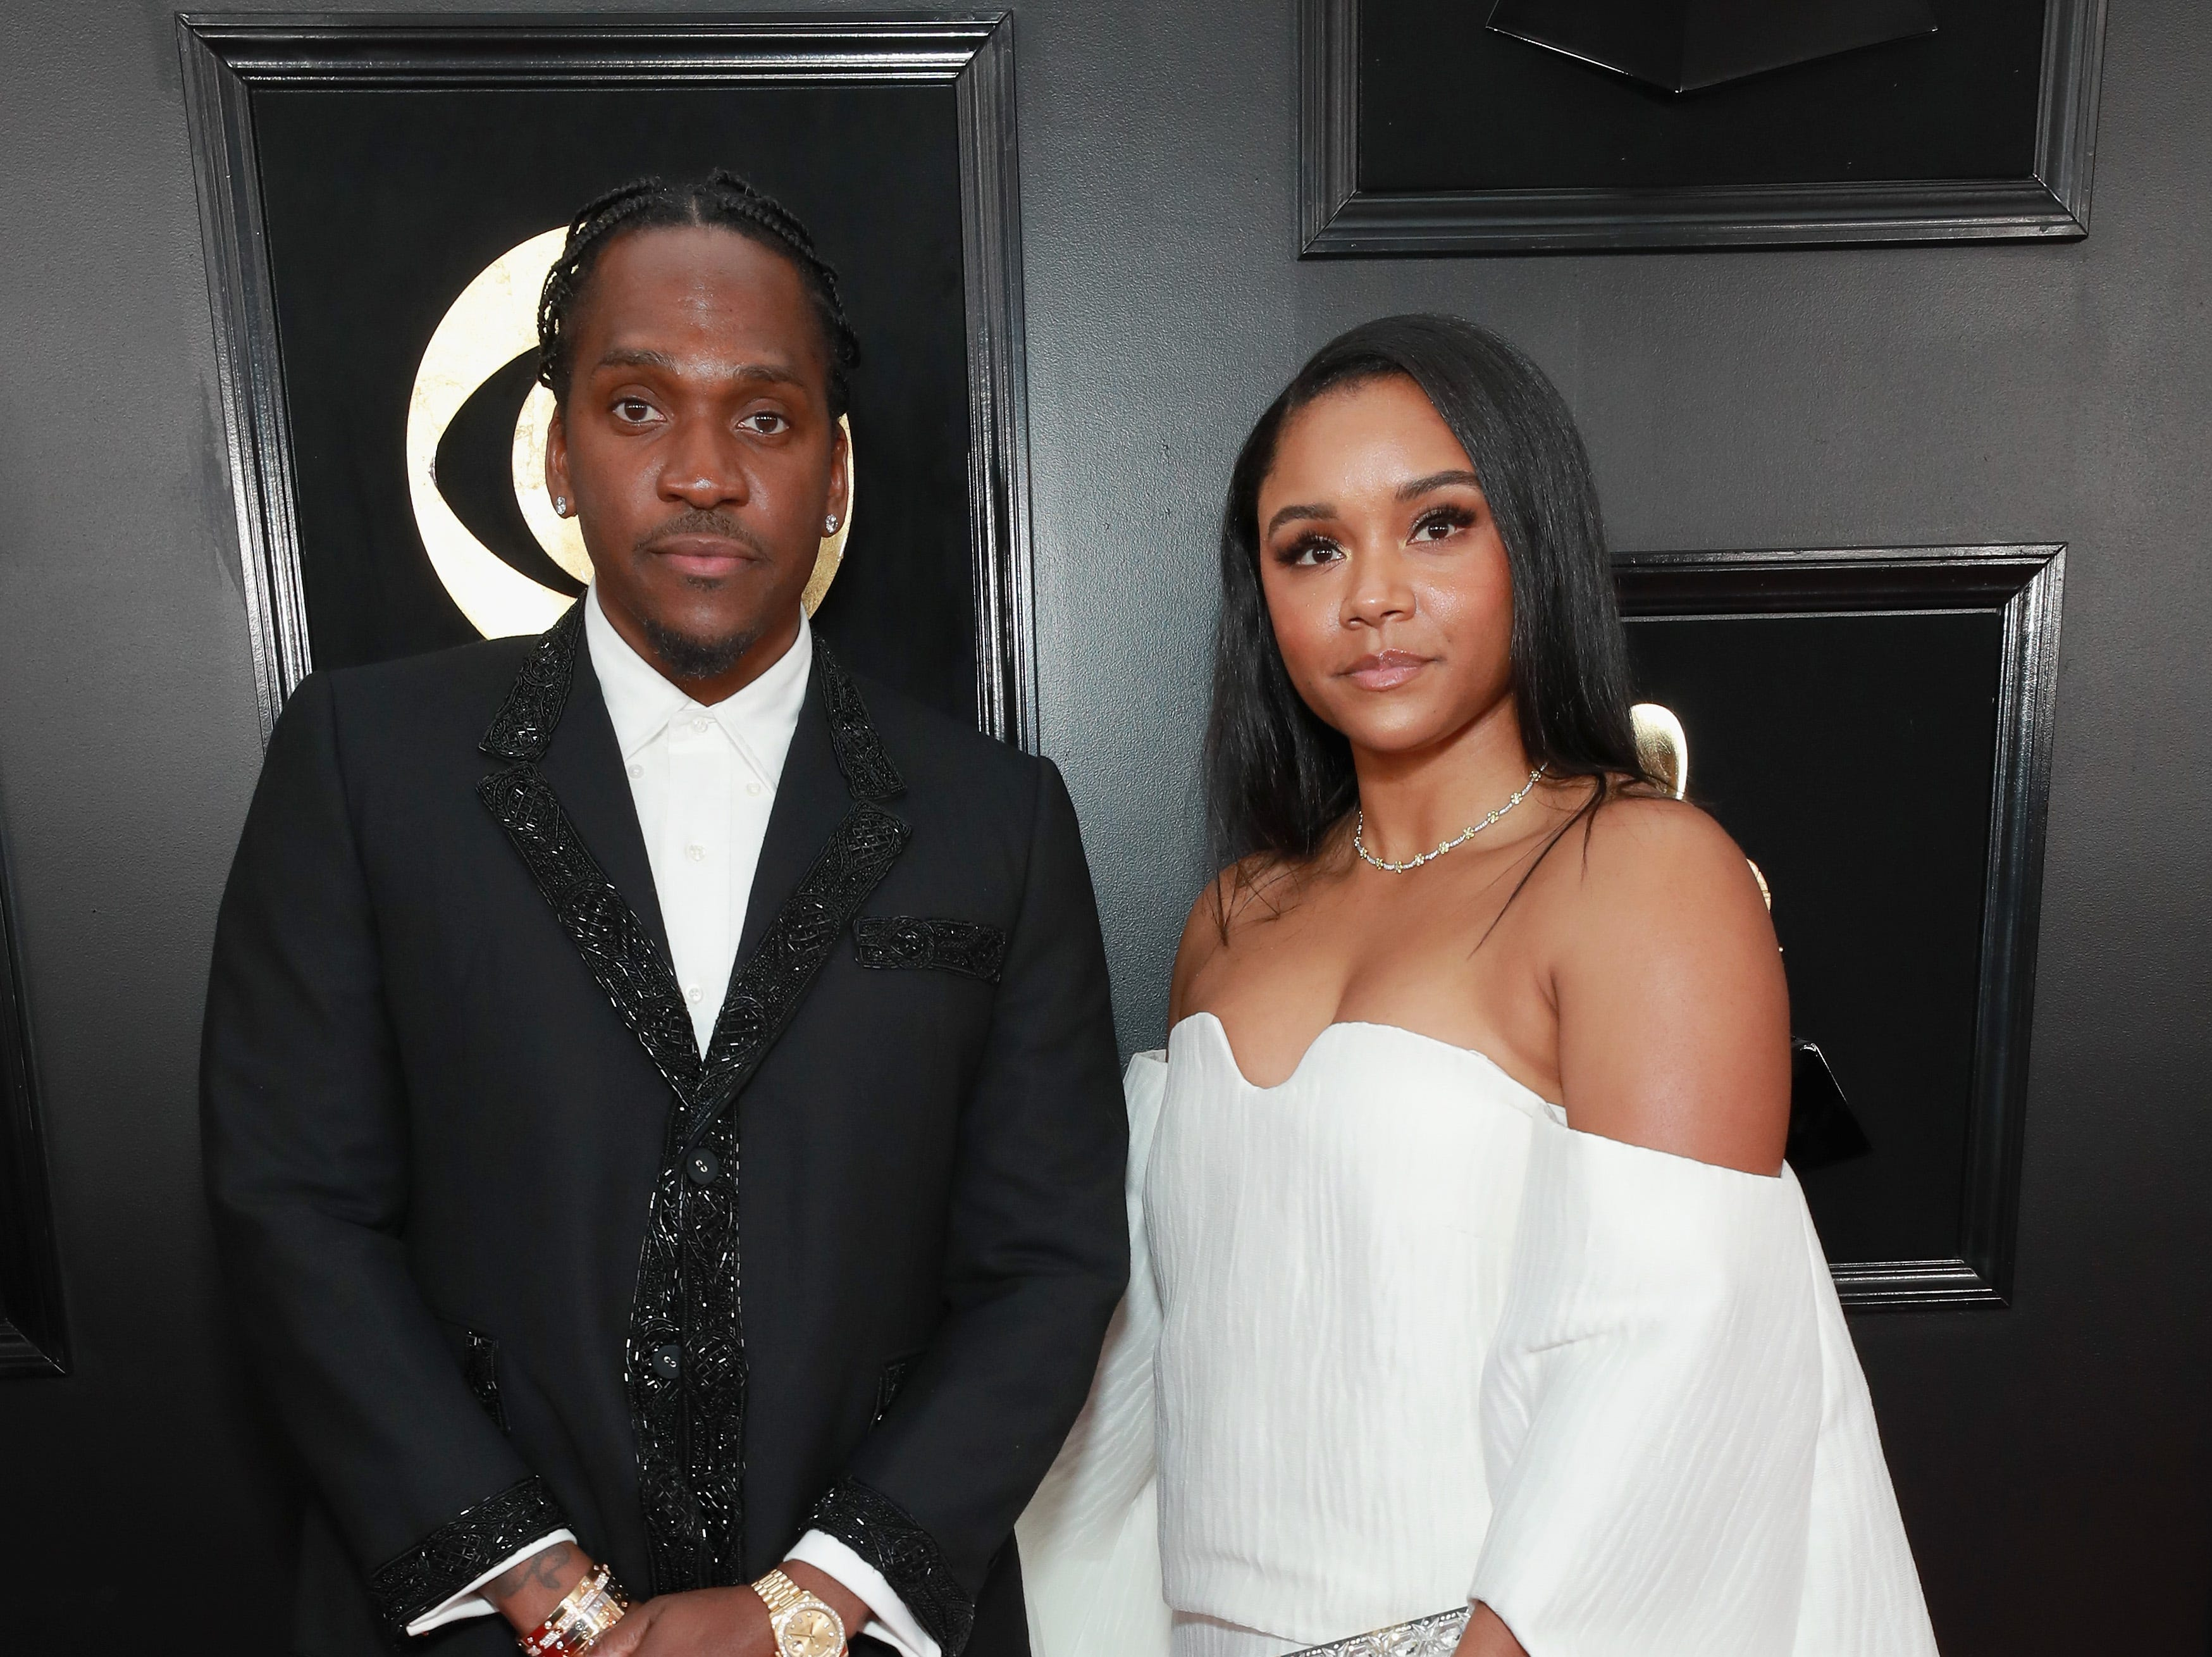 Pusha T y Virginia Williams asisten a la 61ª edición de los premios GRAMMY en el Staples Center el 10 de febrero de 2019 en Los Ángeles, California.